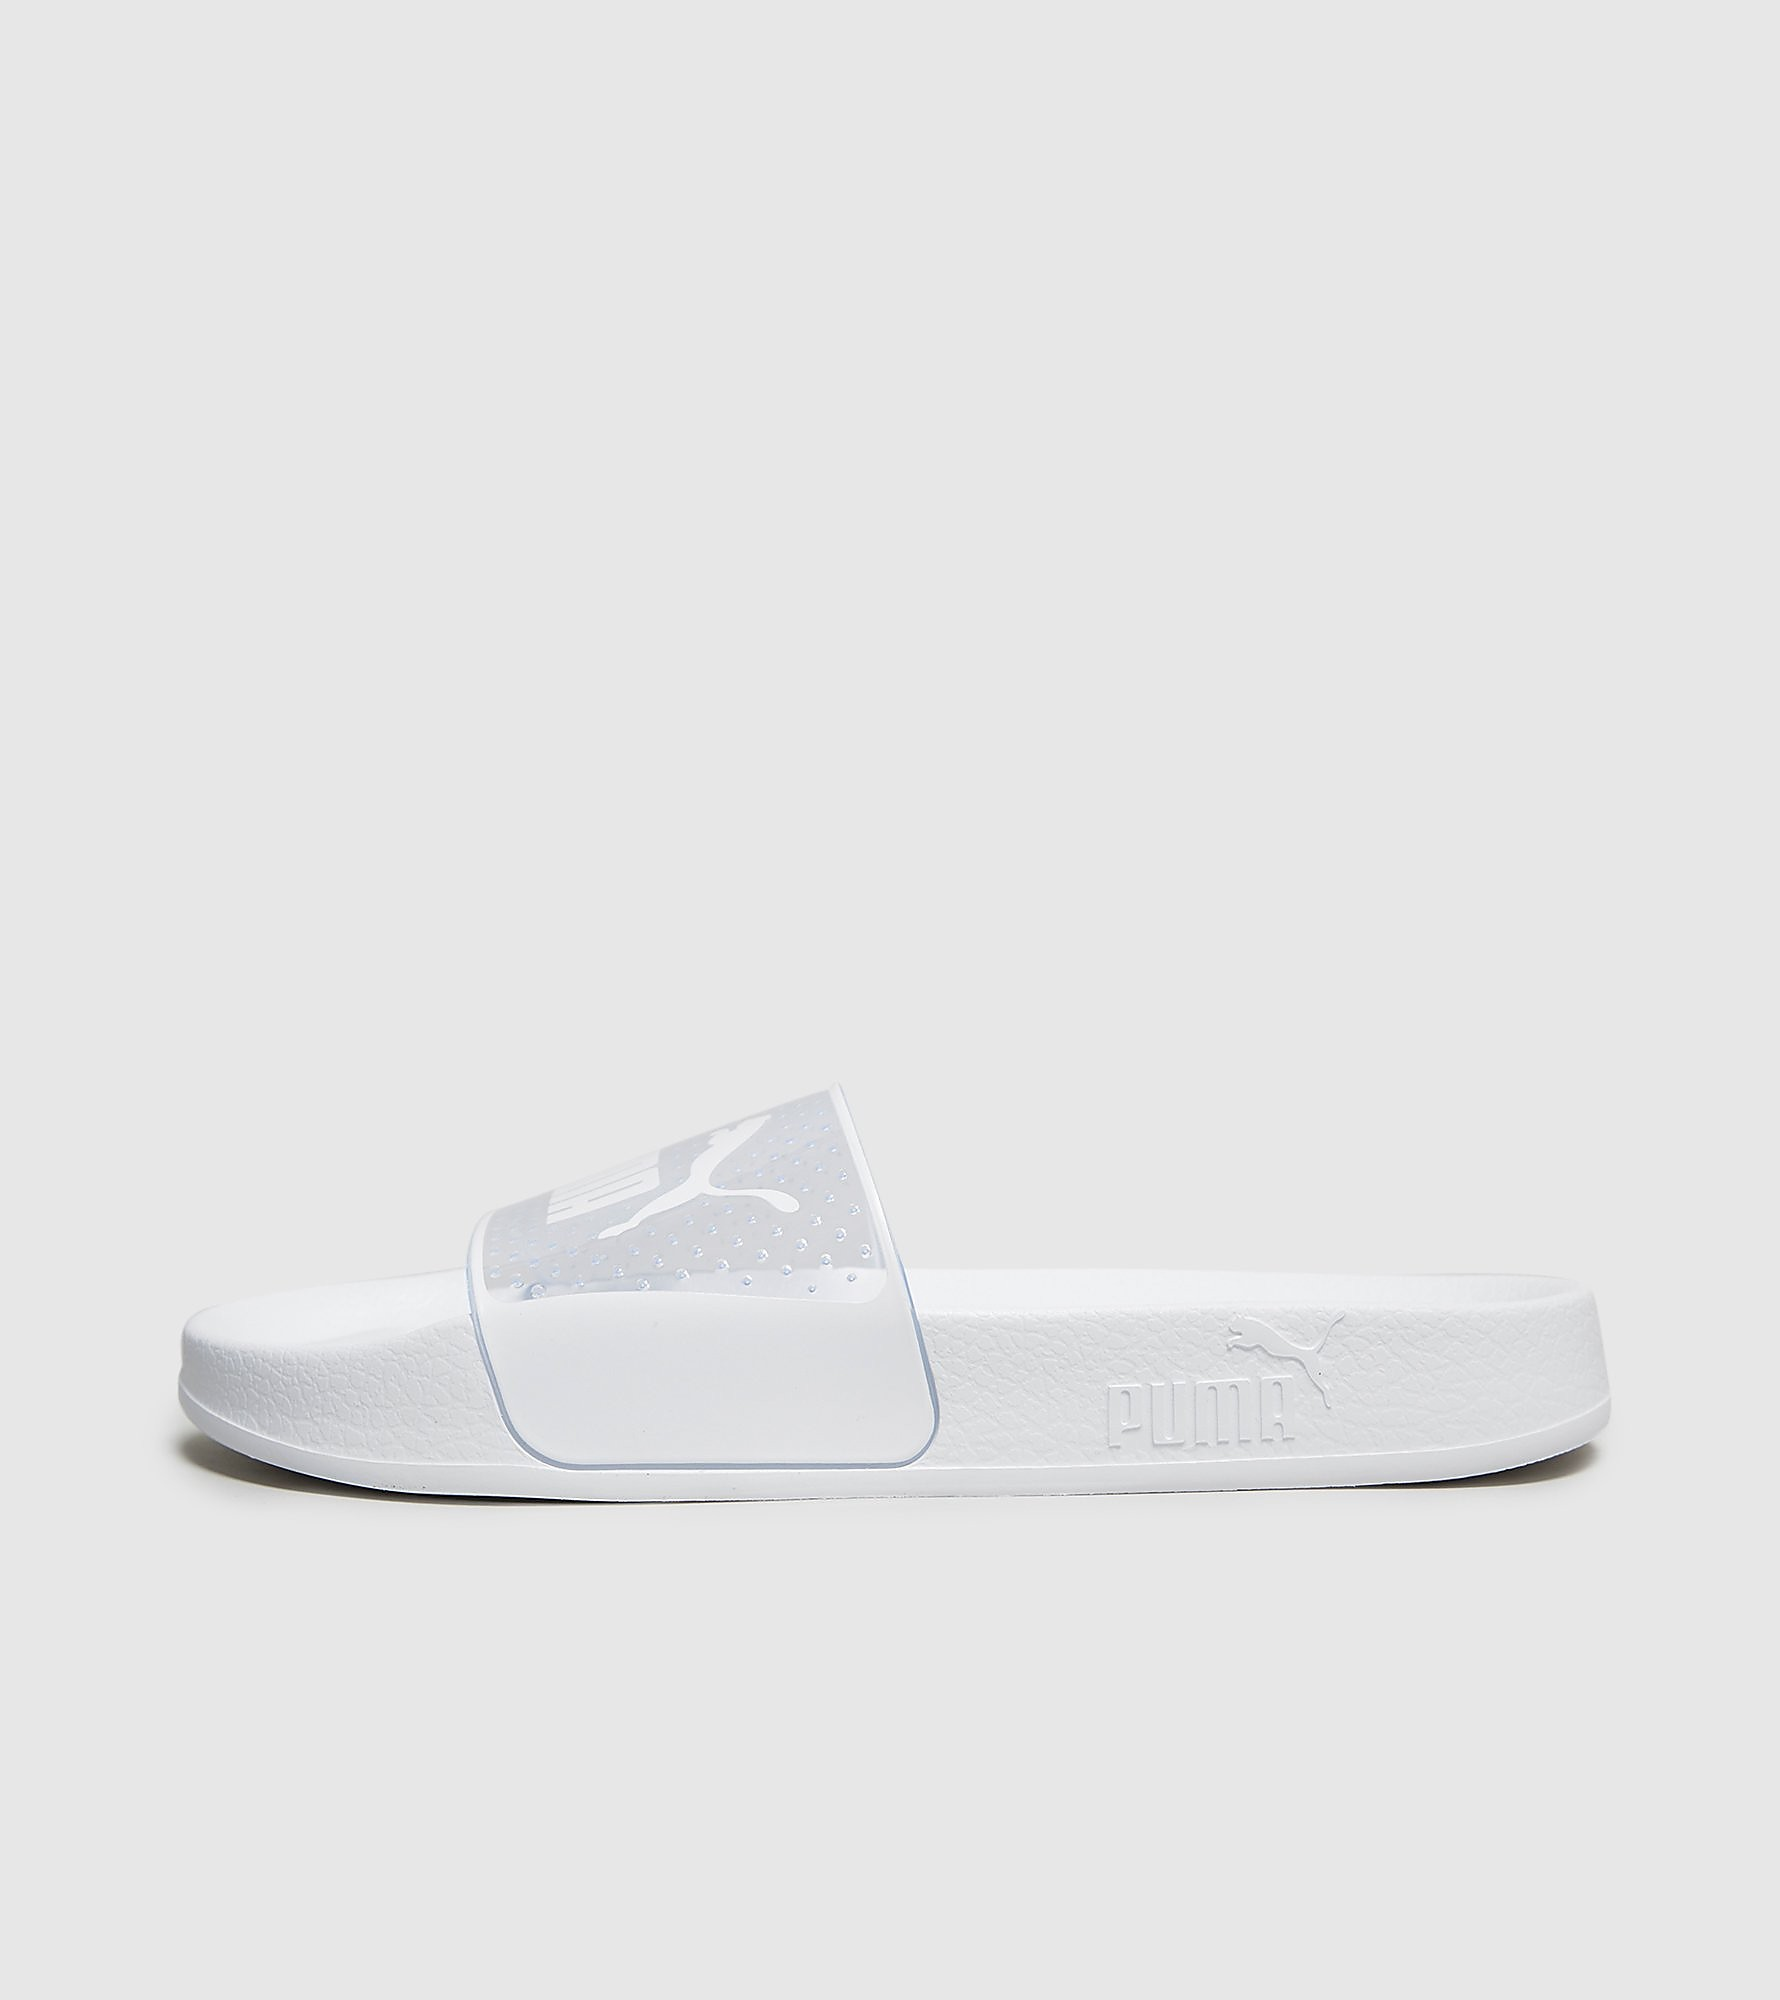 PUMA Leadcat Jelly Slides Women's